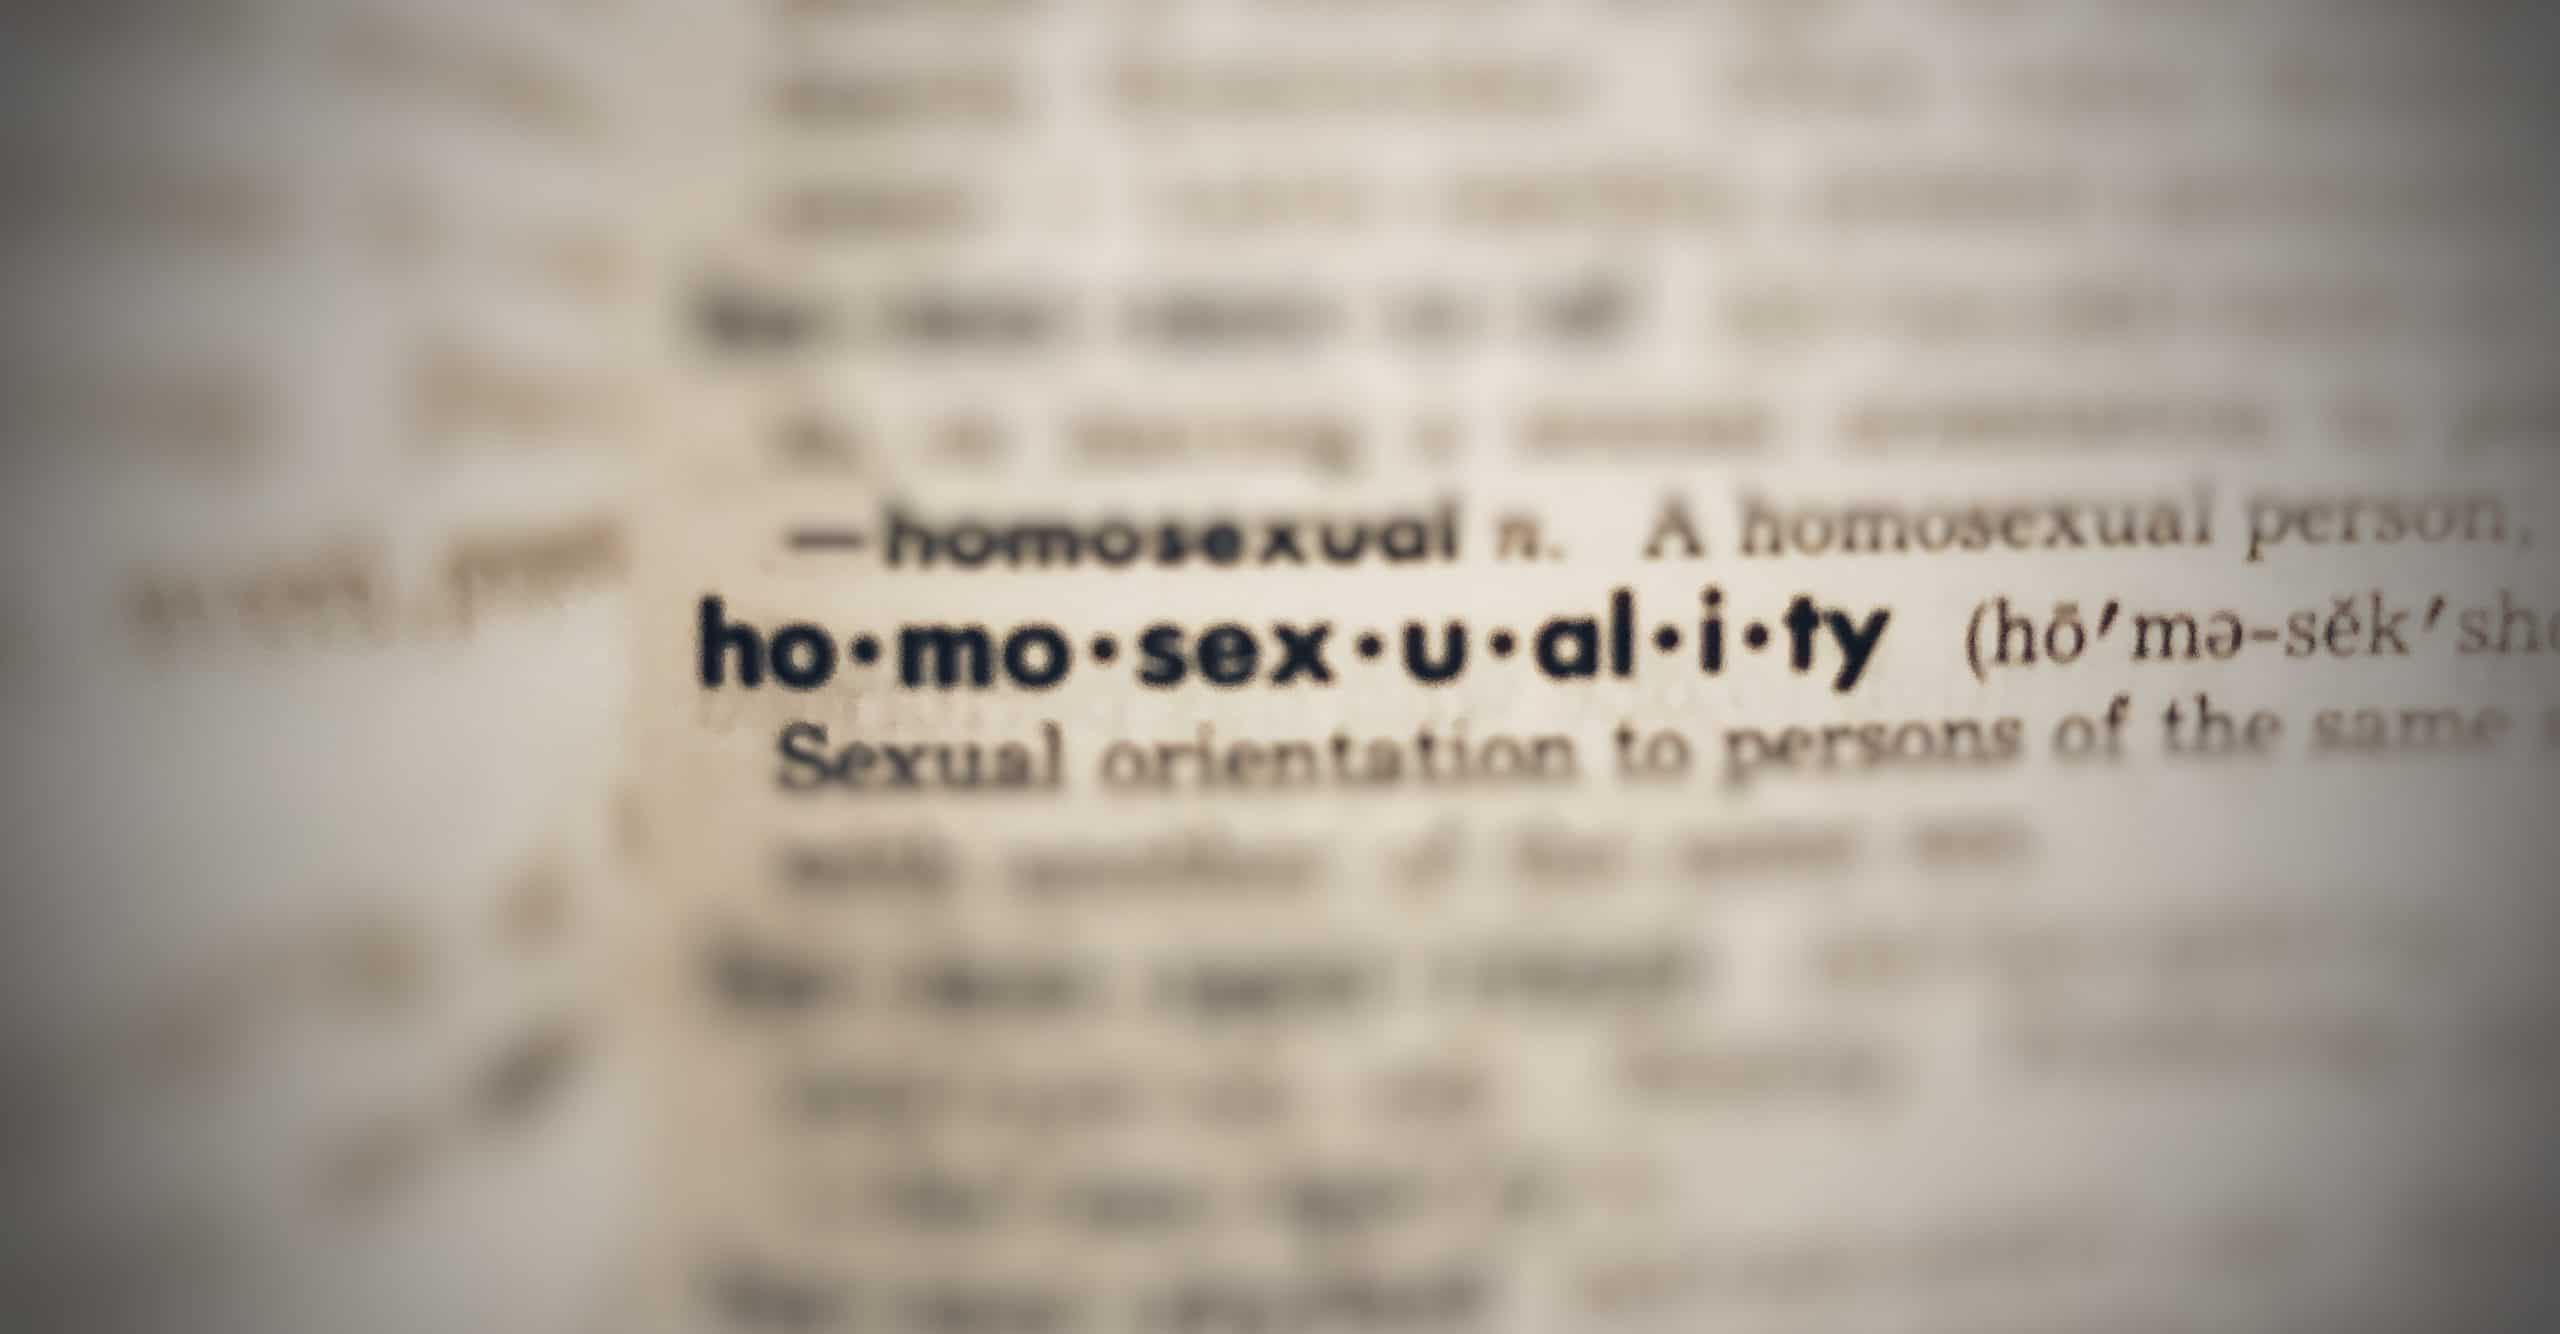 Dictionary entry: homosexuality